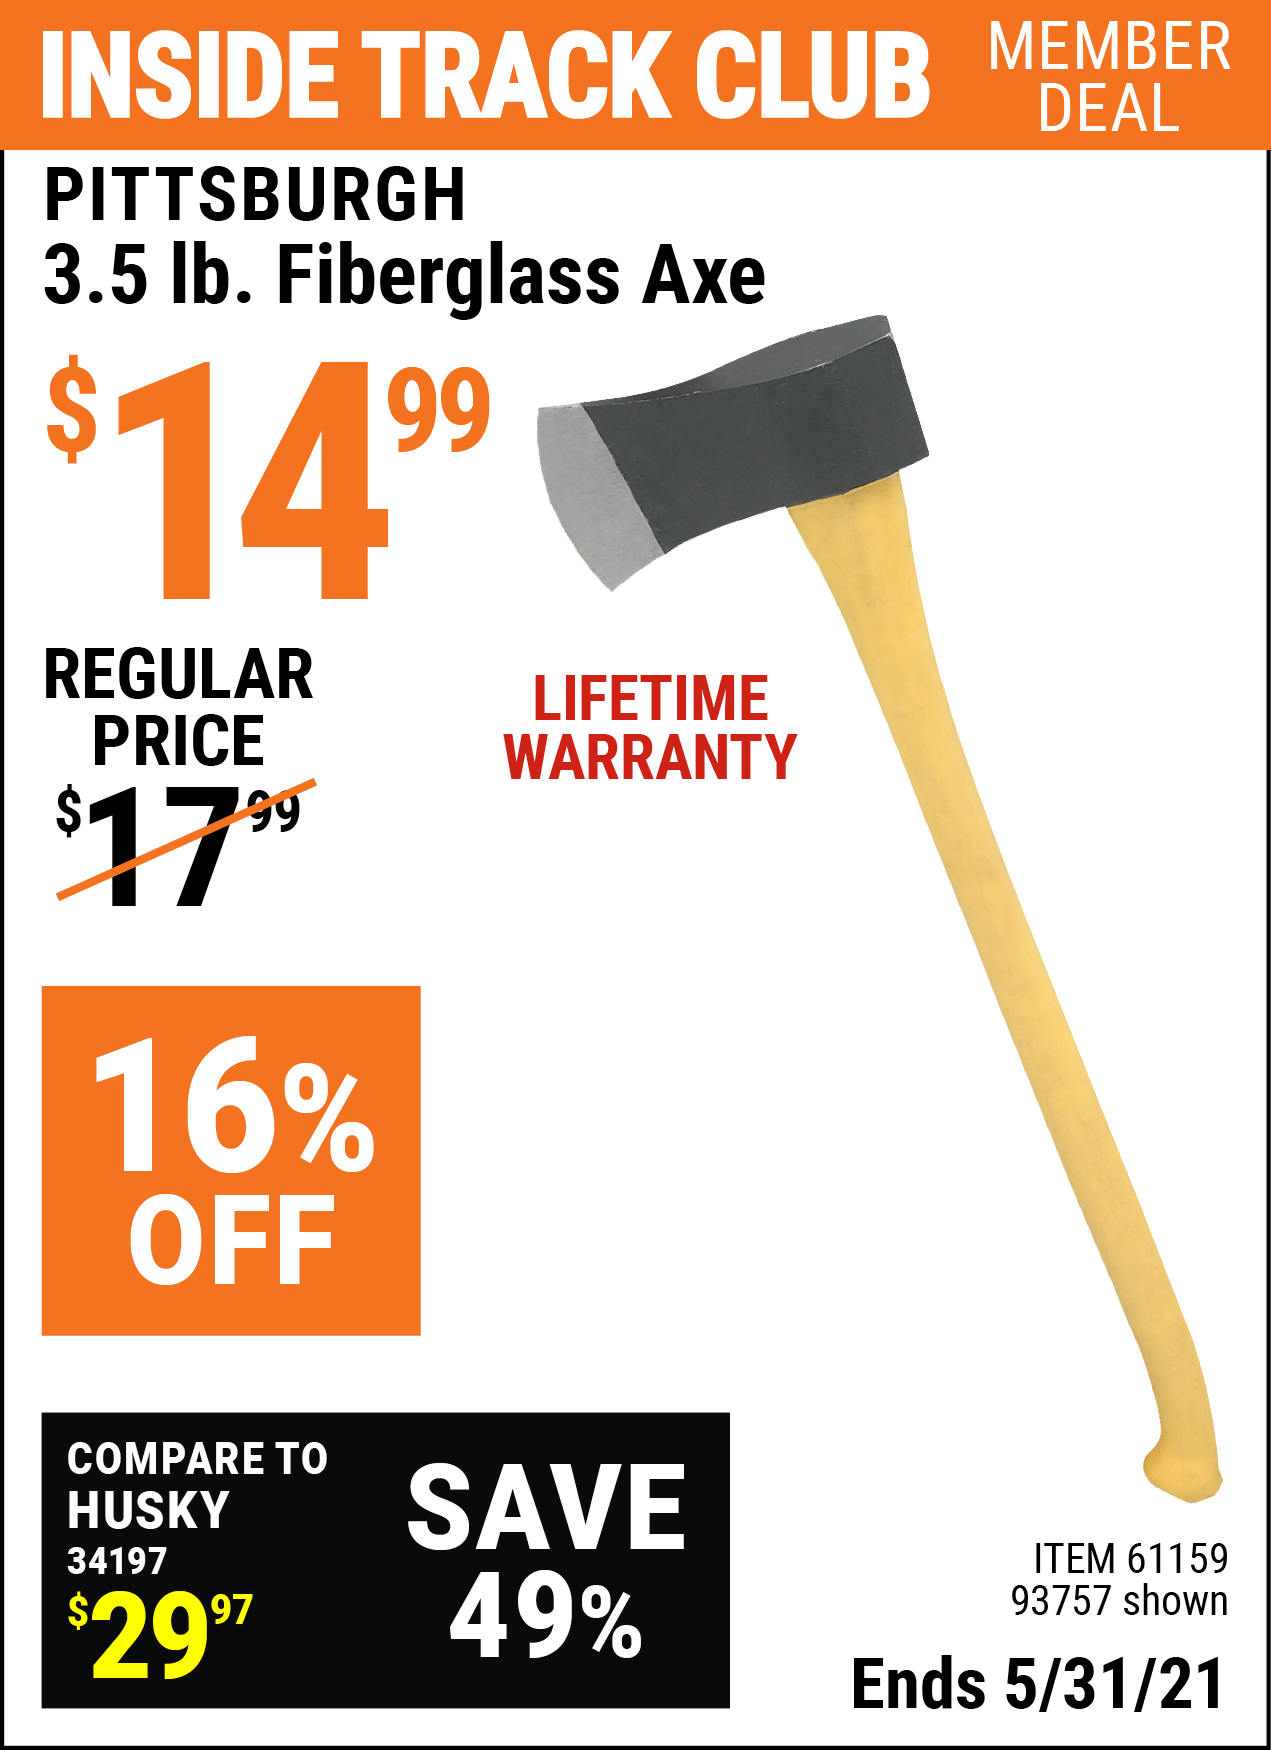 Inside Track Club members can buy the PITTSBURGH 3.5 lb. Fiberglass Axe (Item 93757/61159) for $14.99, valid through 5/31/2021.